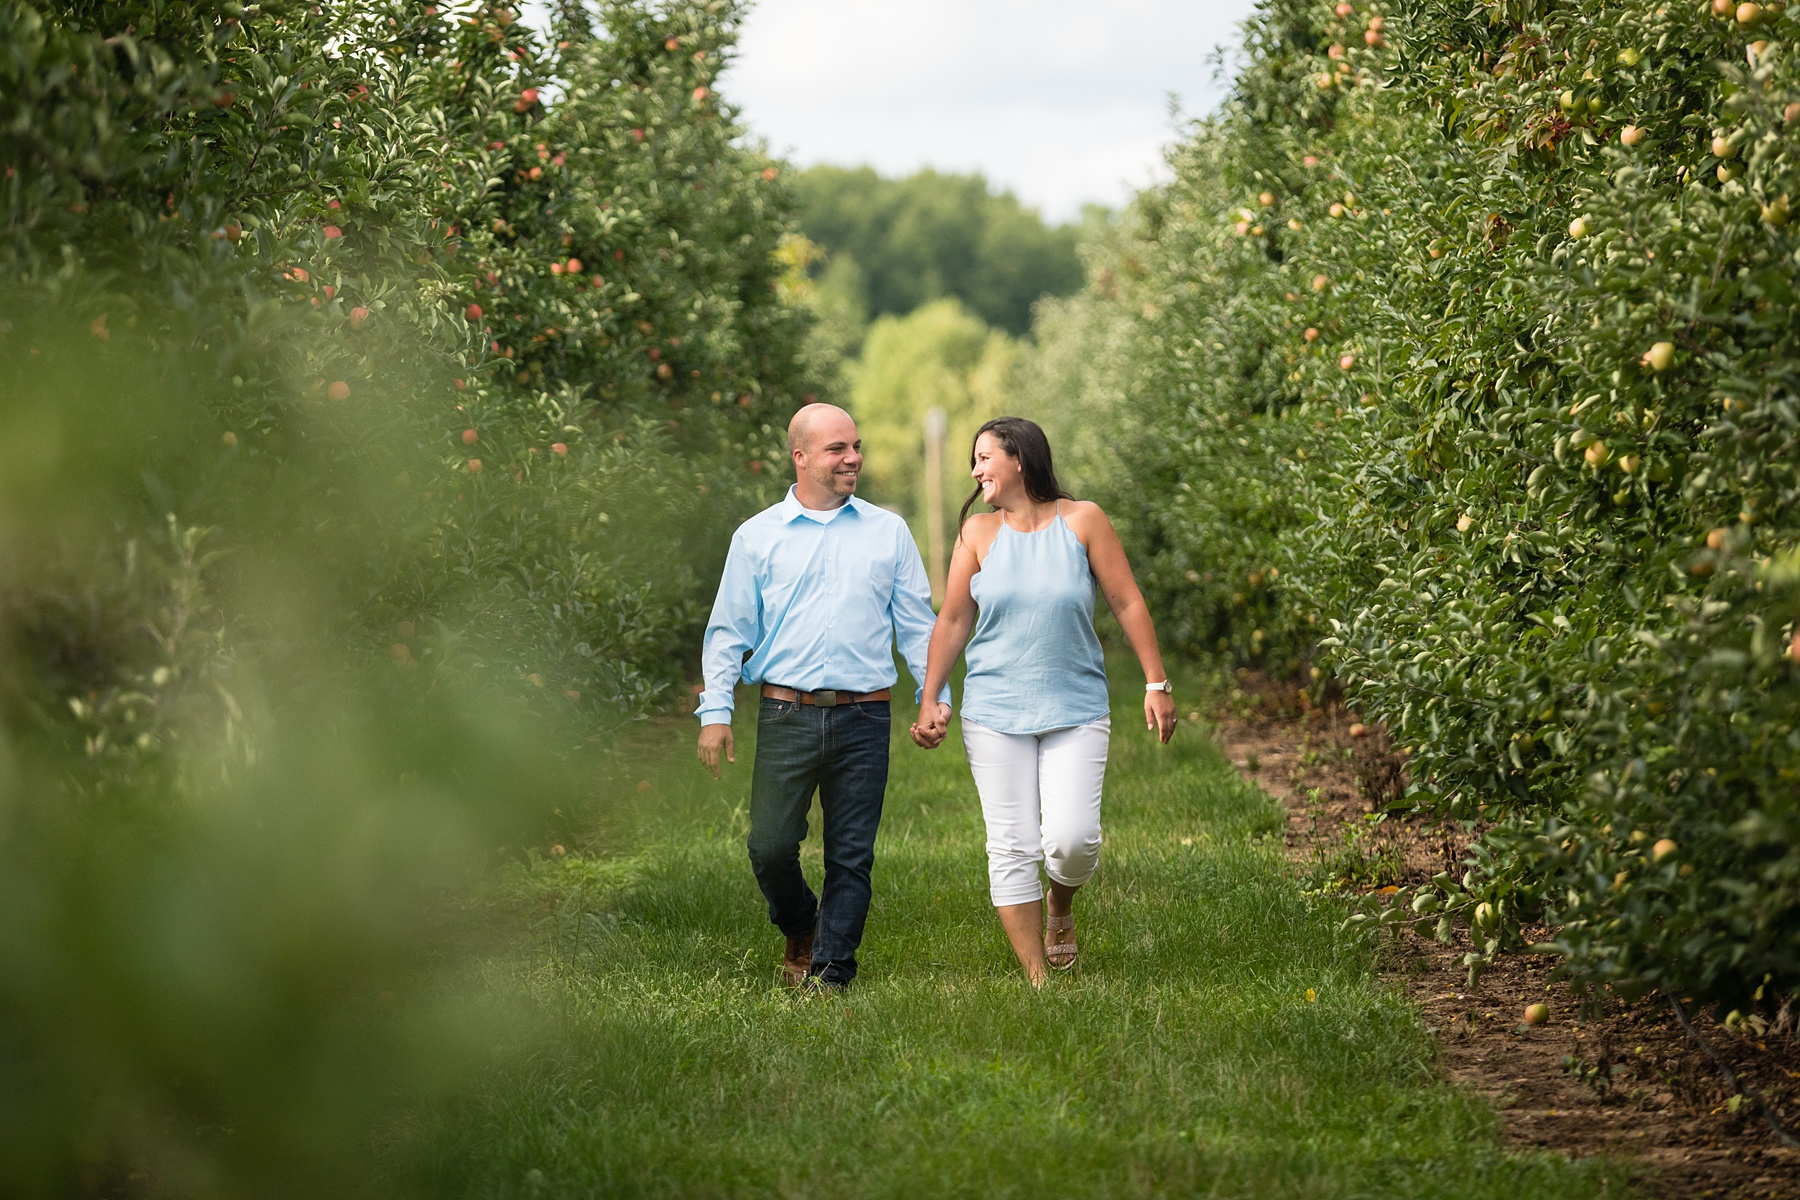 Brandon_Shafer_Photography_Danielle_Matt_Apple_Orchard_Engagement_Photos_0001.jpg